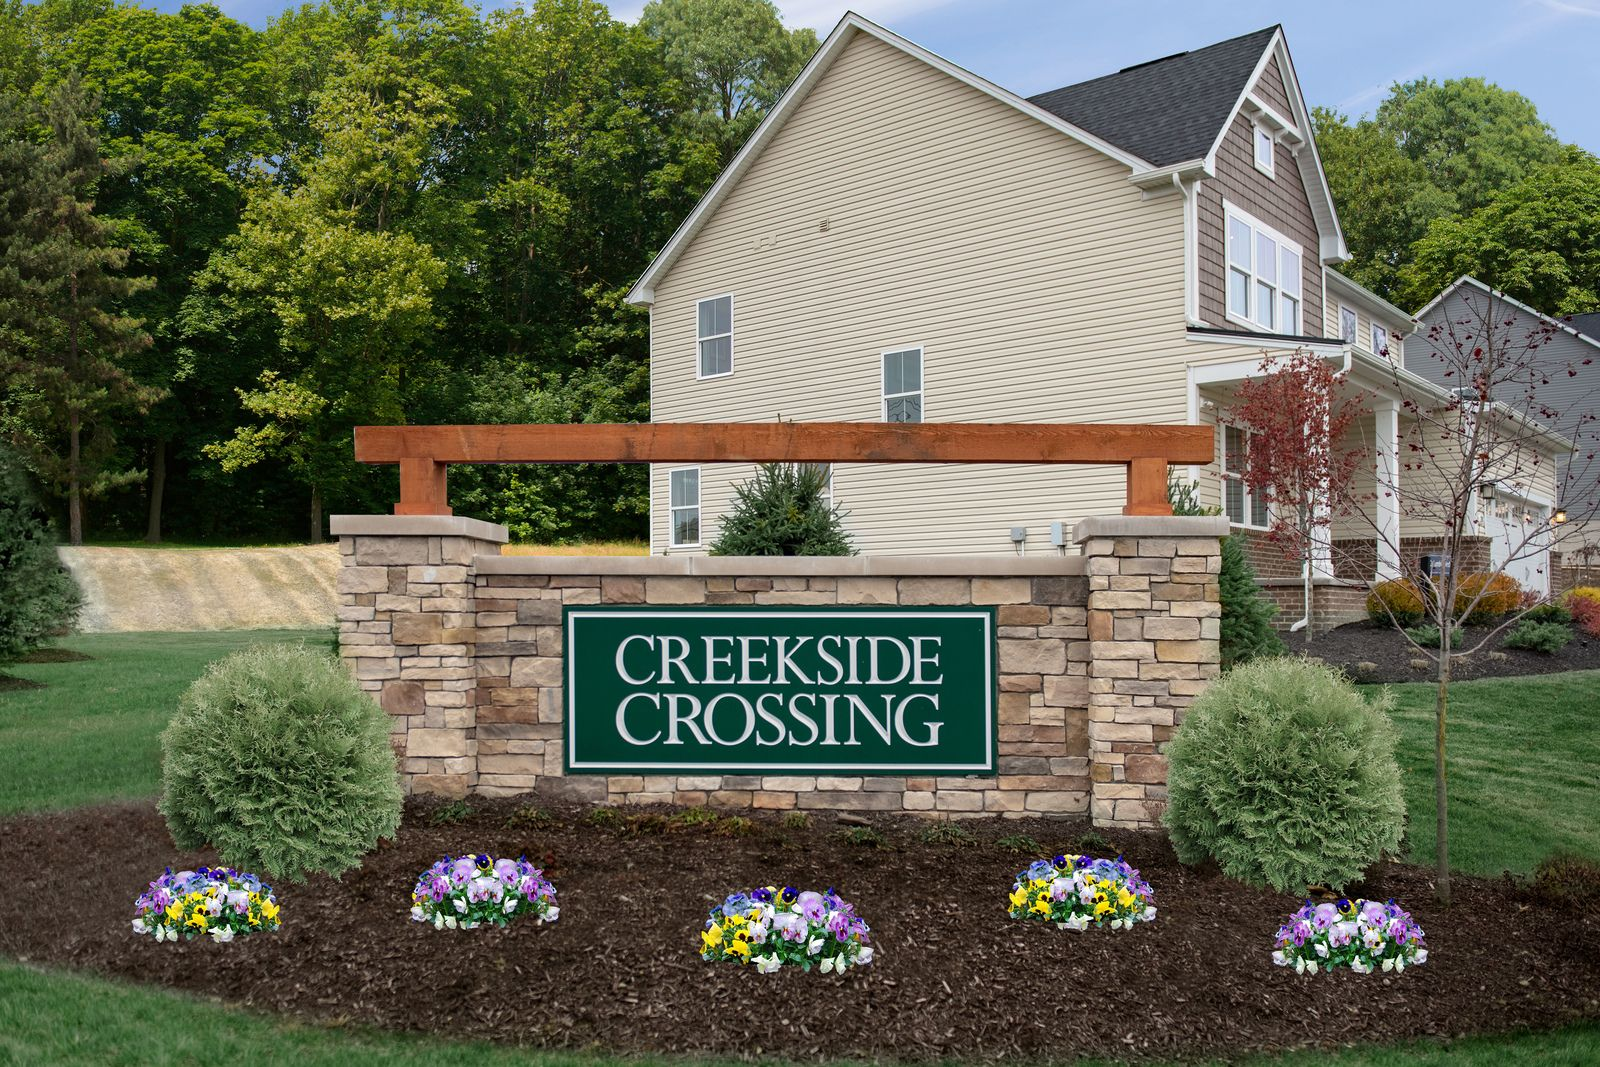 Welcome Home to Creekside Crossing:The only new single-family homes in North Strabane with community playground, pavilion, & walking path. Minutes to I-79, I-70 & Rt. 19.Click here to schedule your visit.